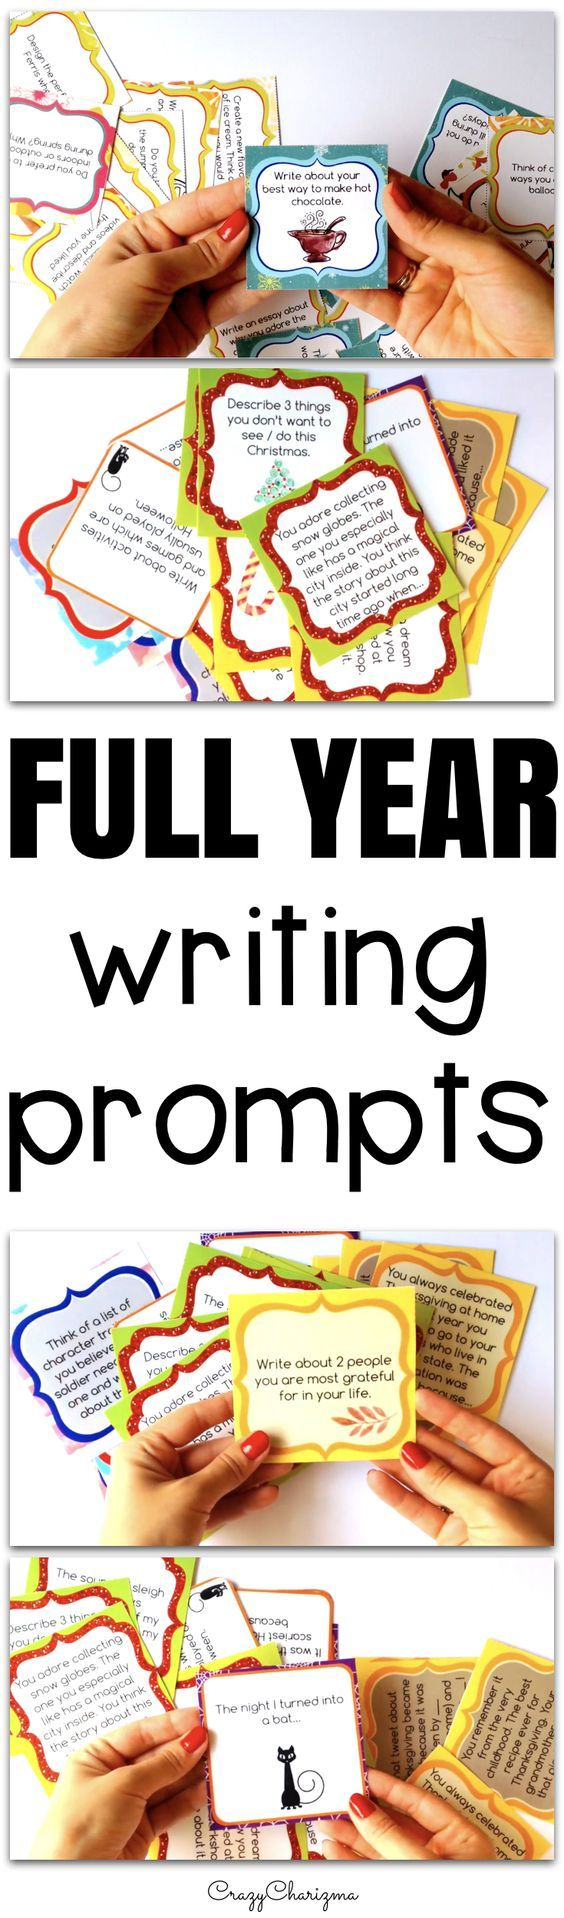 Save your time creating your own journal prompts or searching them on the internet. Use these versatile writing prompts every single day. Perfect for centers, bell ringer activities, prep for writing tests, class discussions or writing assignments at home.